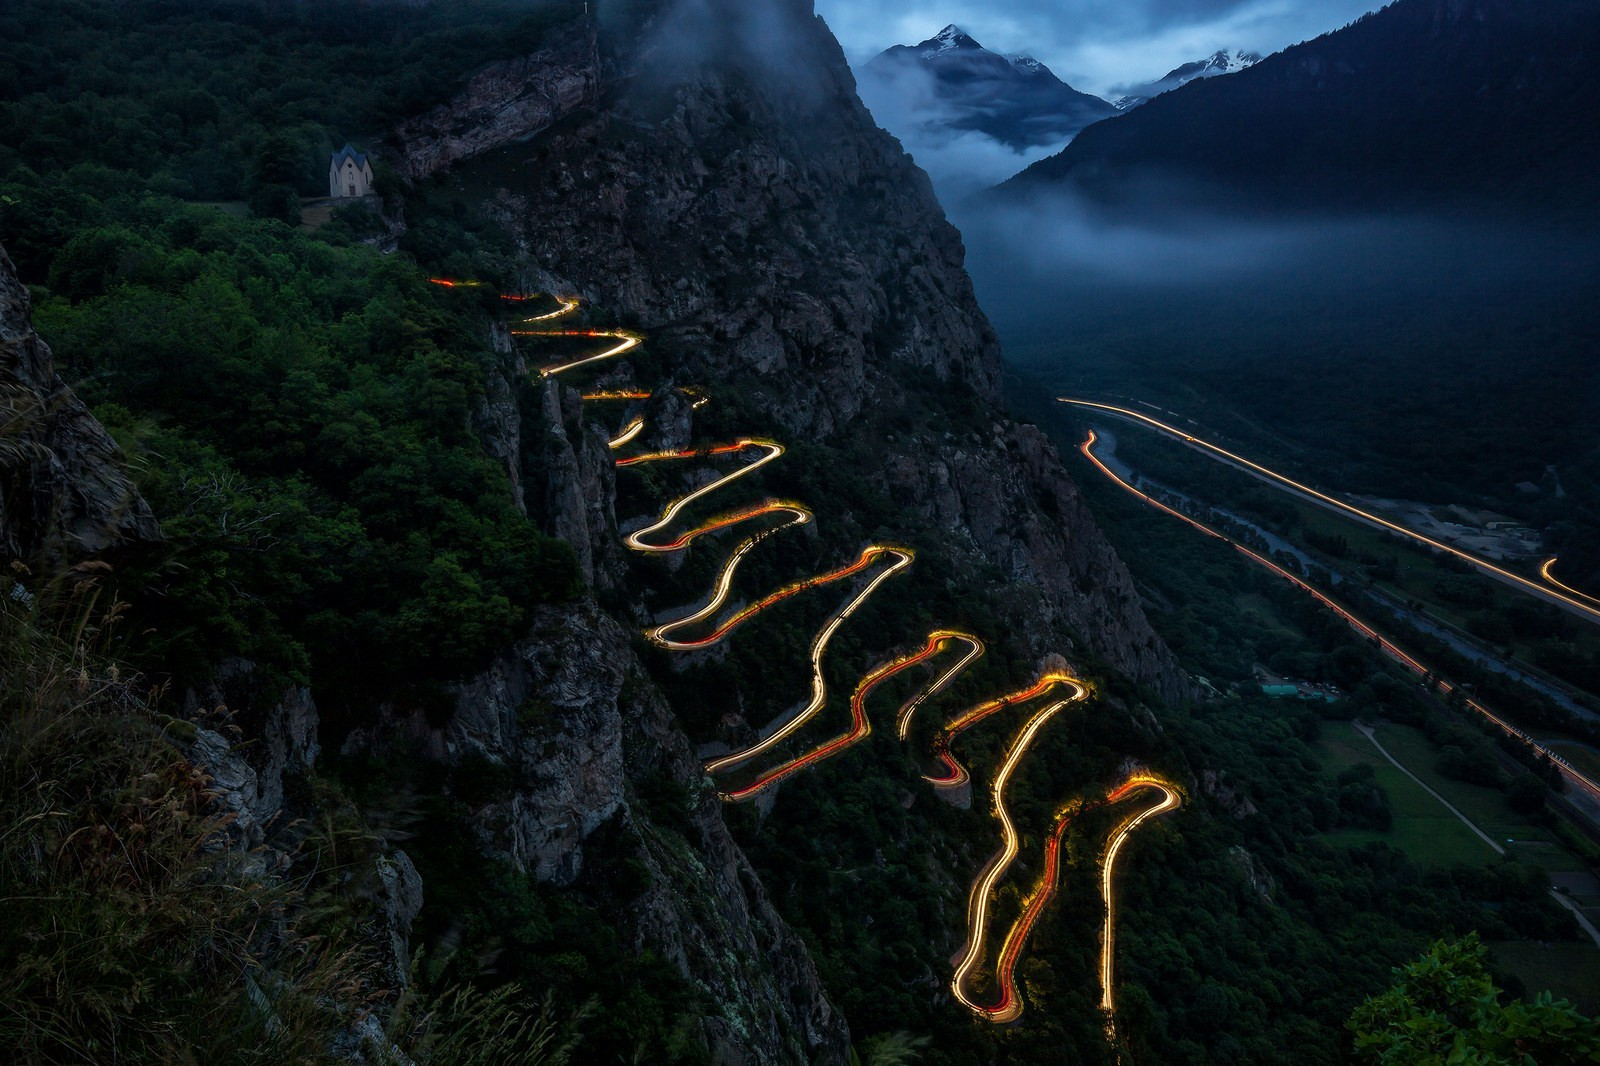 Full Hd Car Wallpapers 1920x1080 Download Landscape Lights Car Long Exposure Mountains Clouds